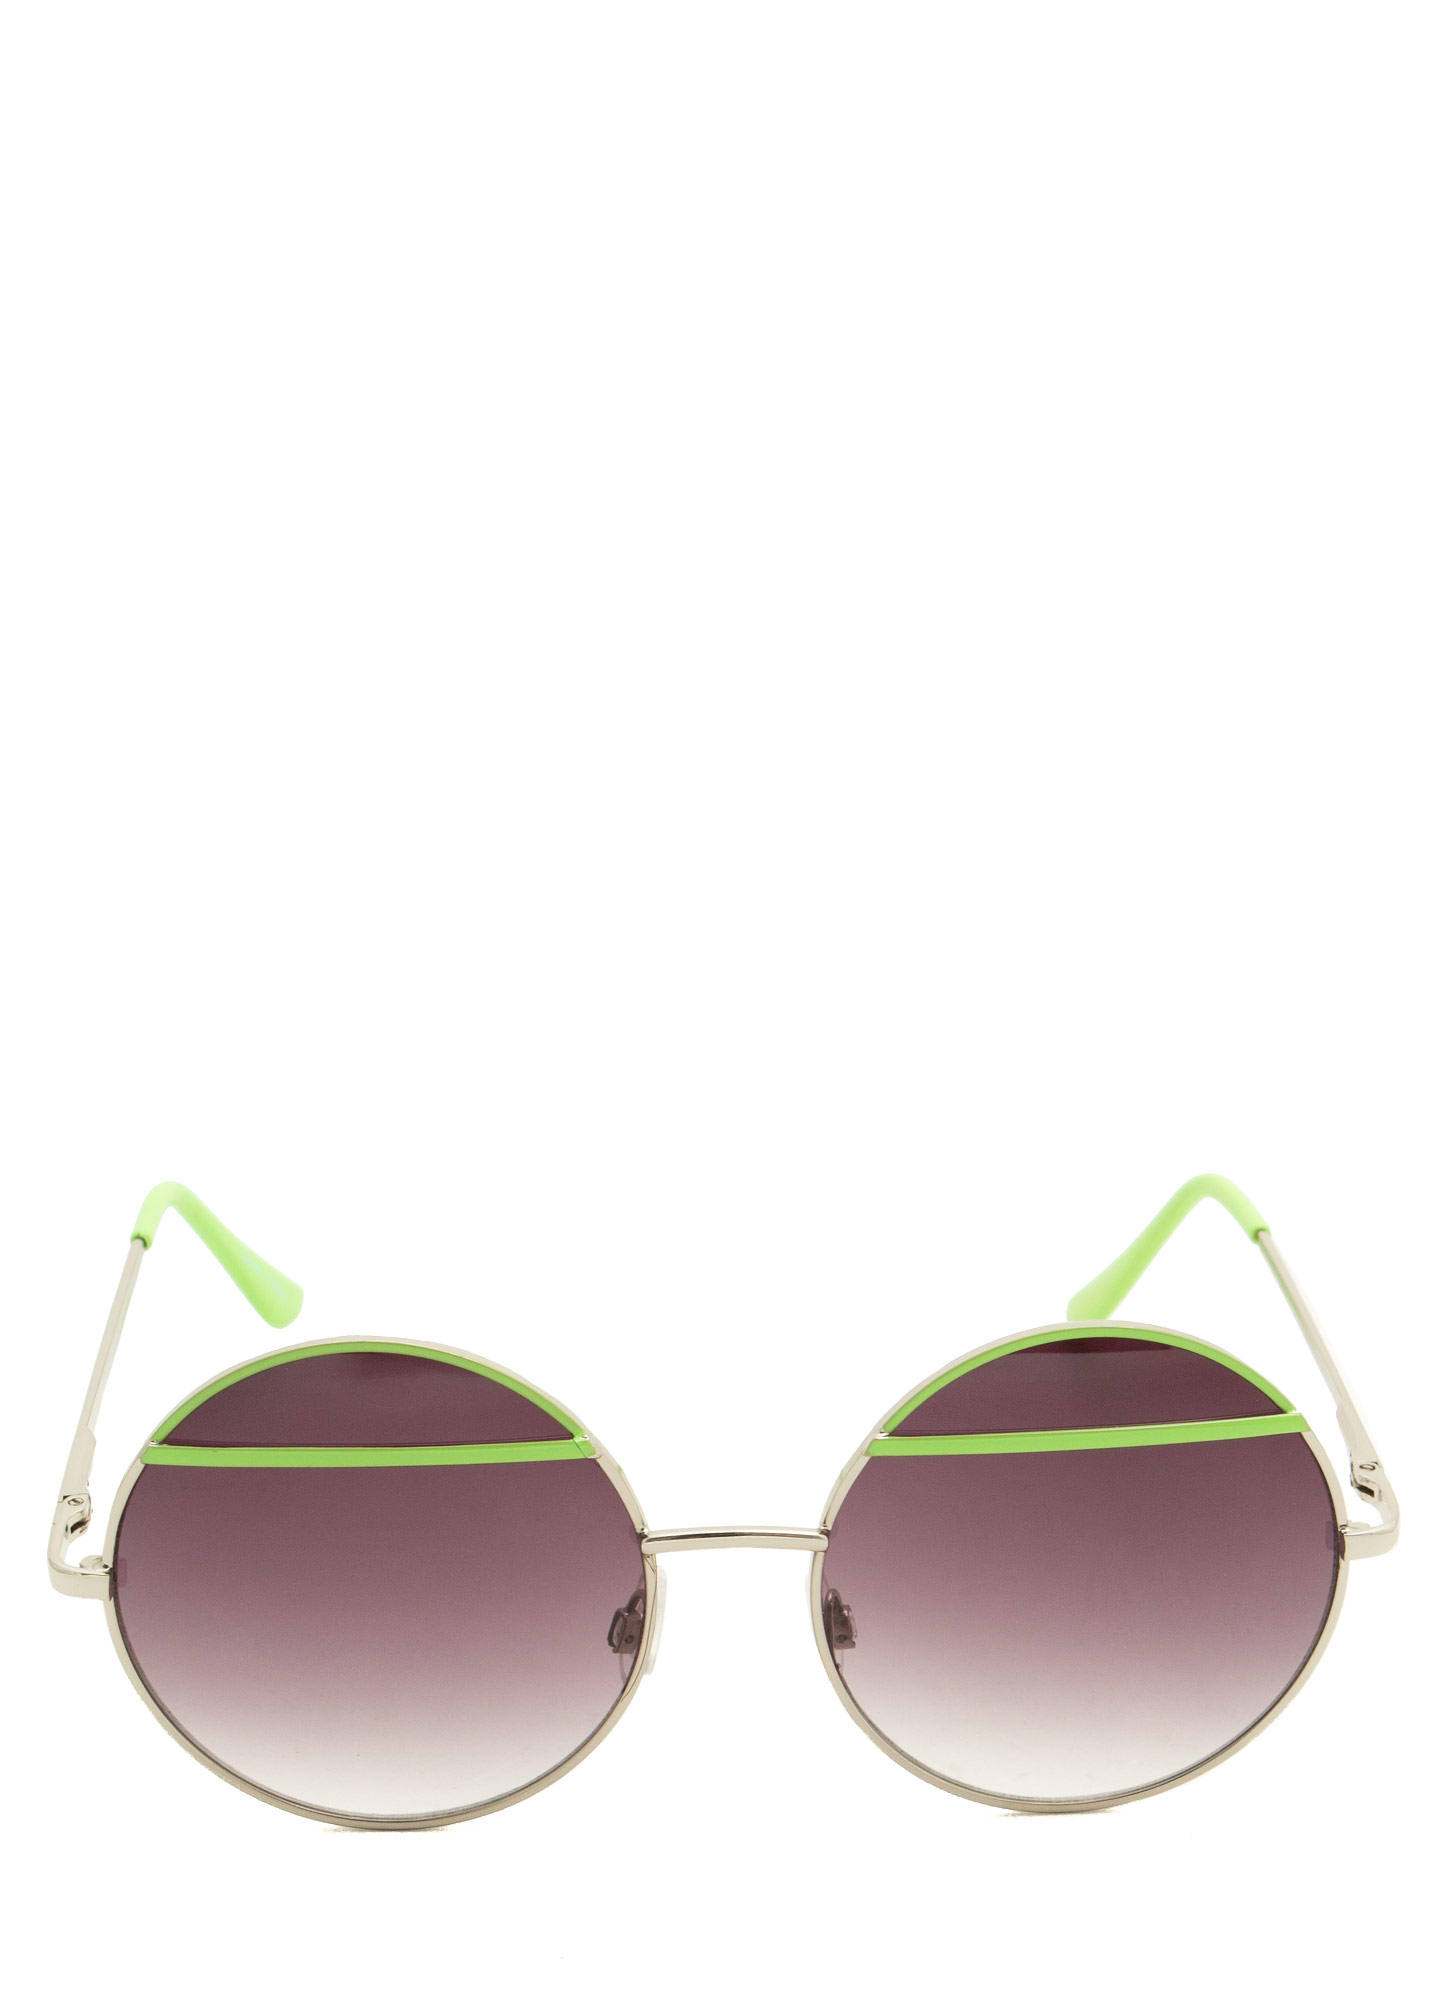 Bar Topped Round Sunglasses GREEN